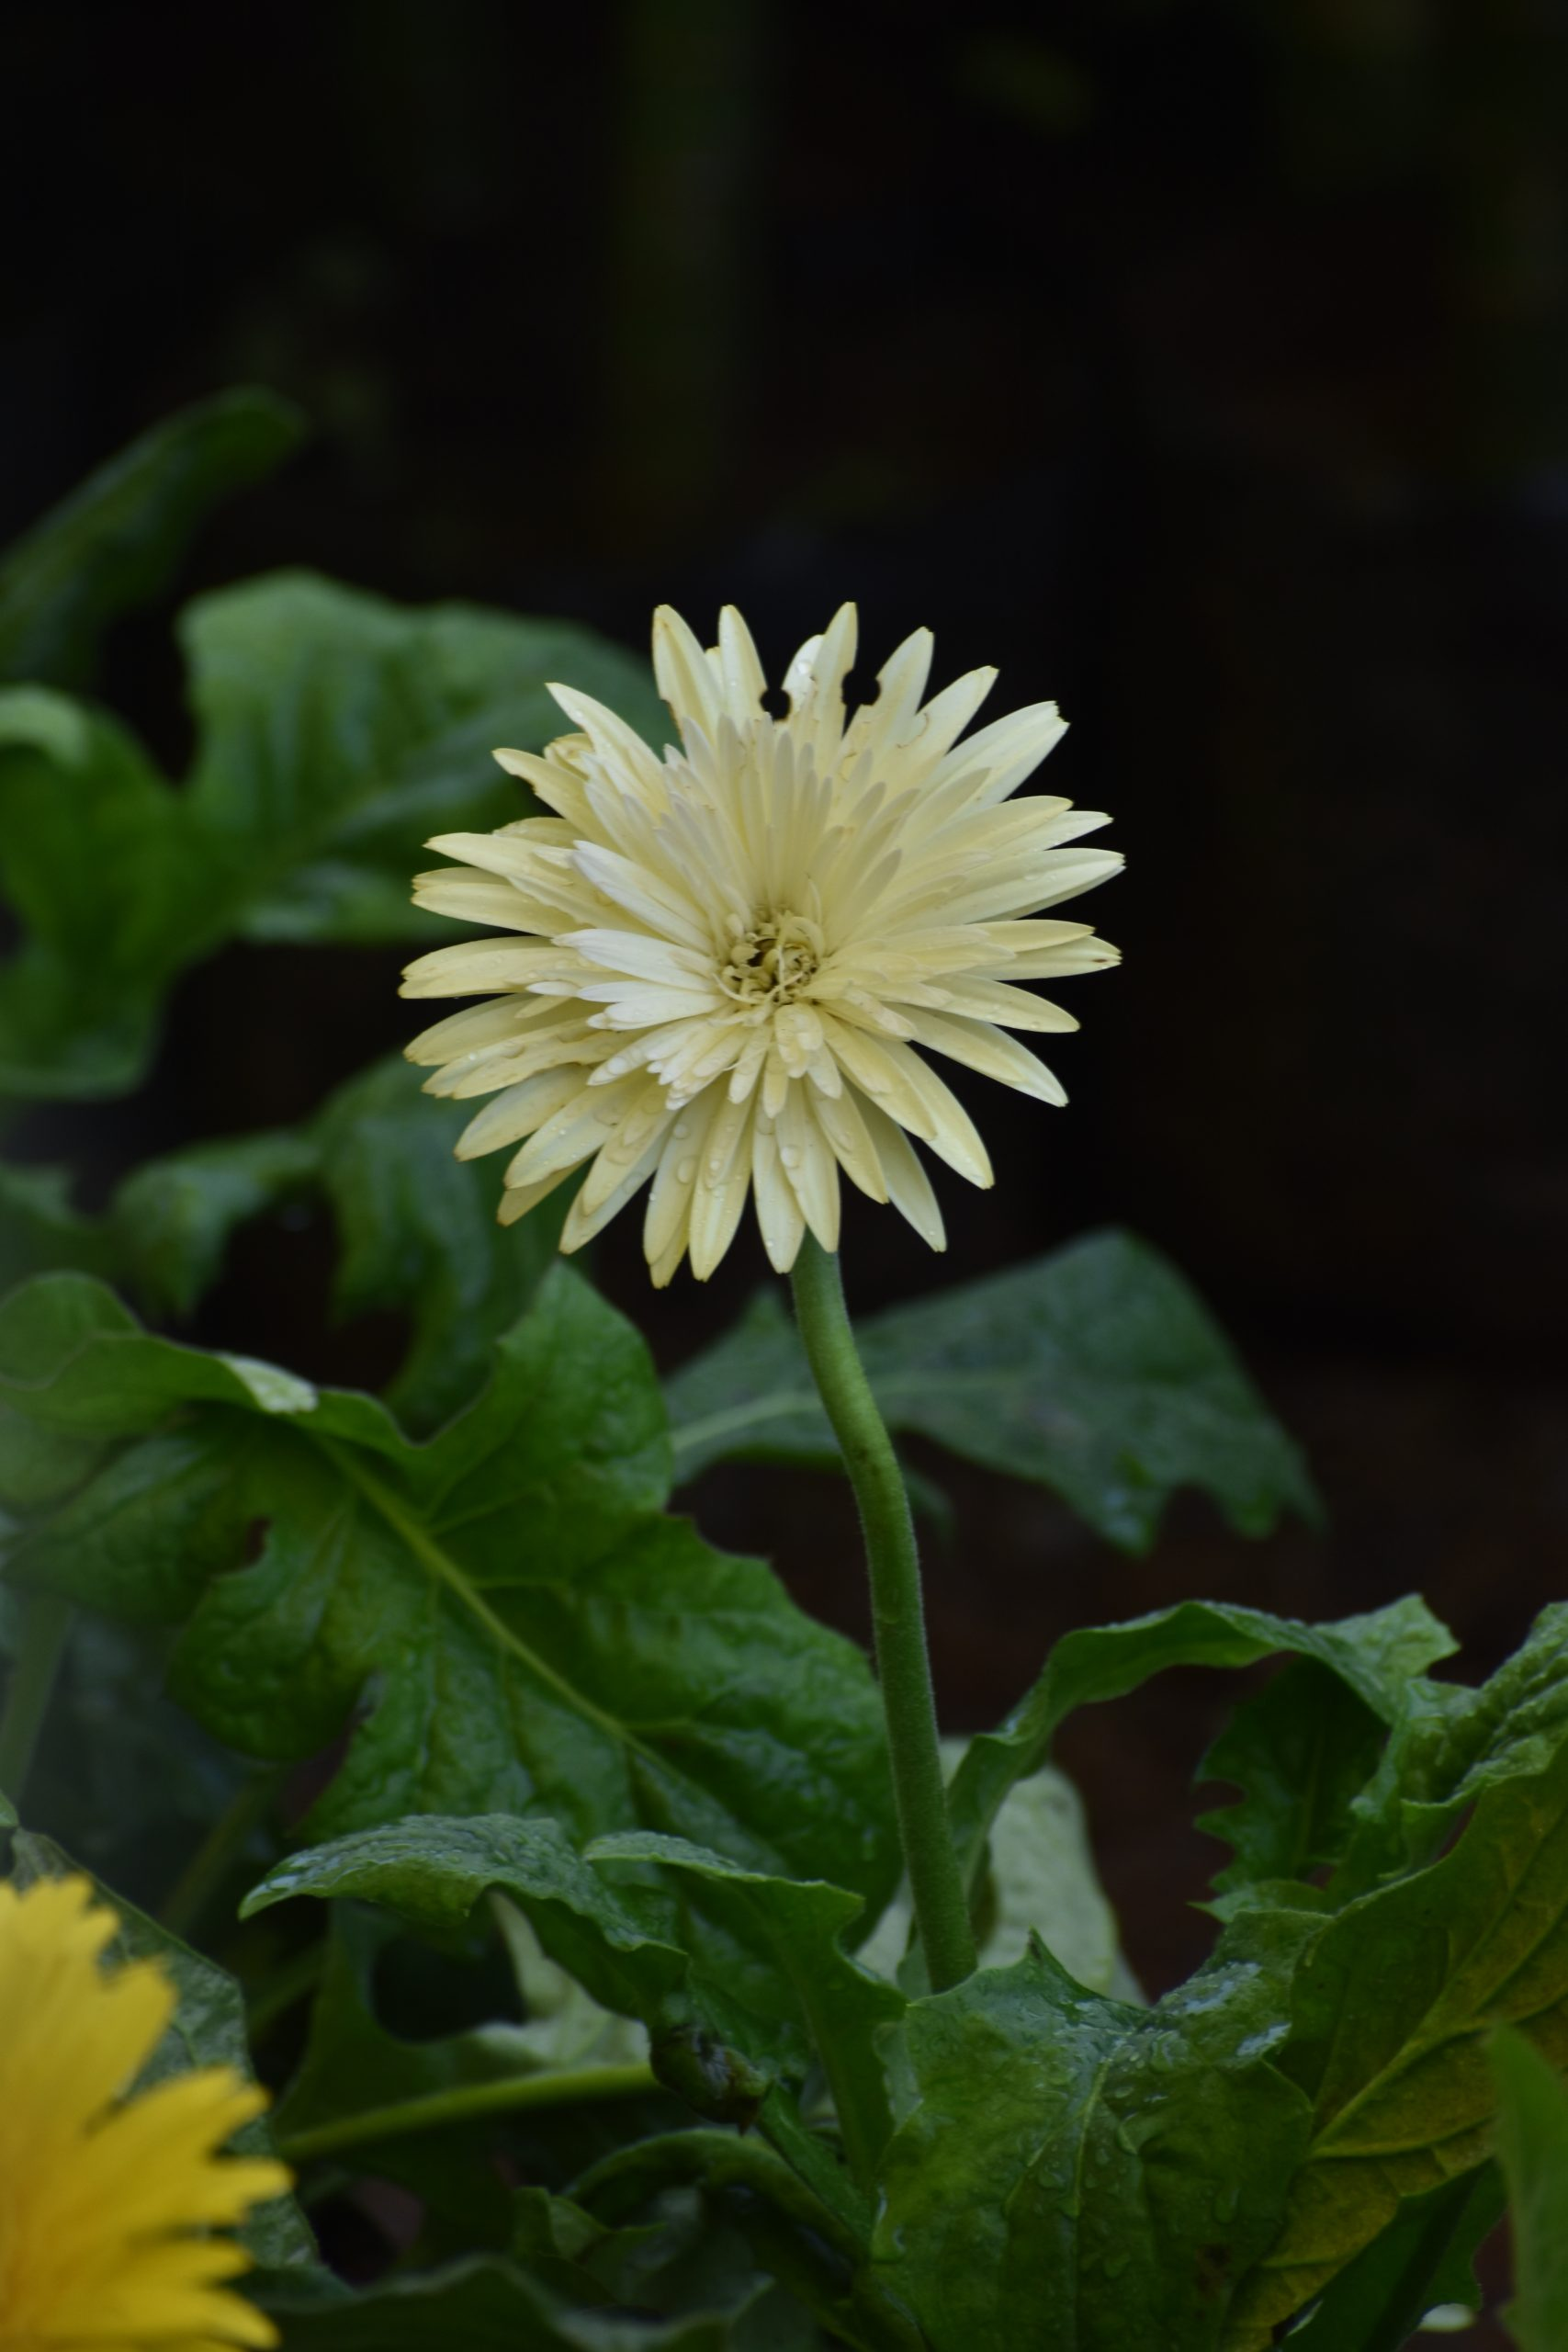 a blooming white flower